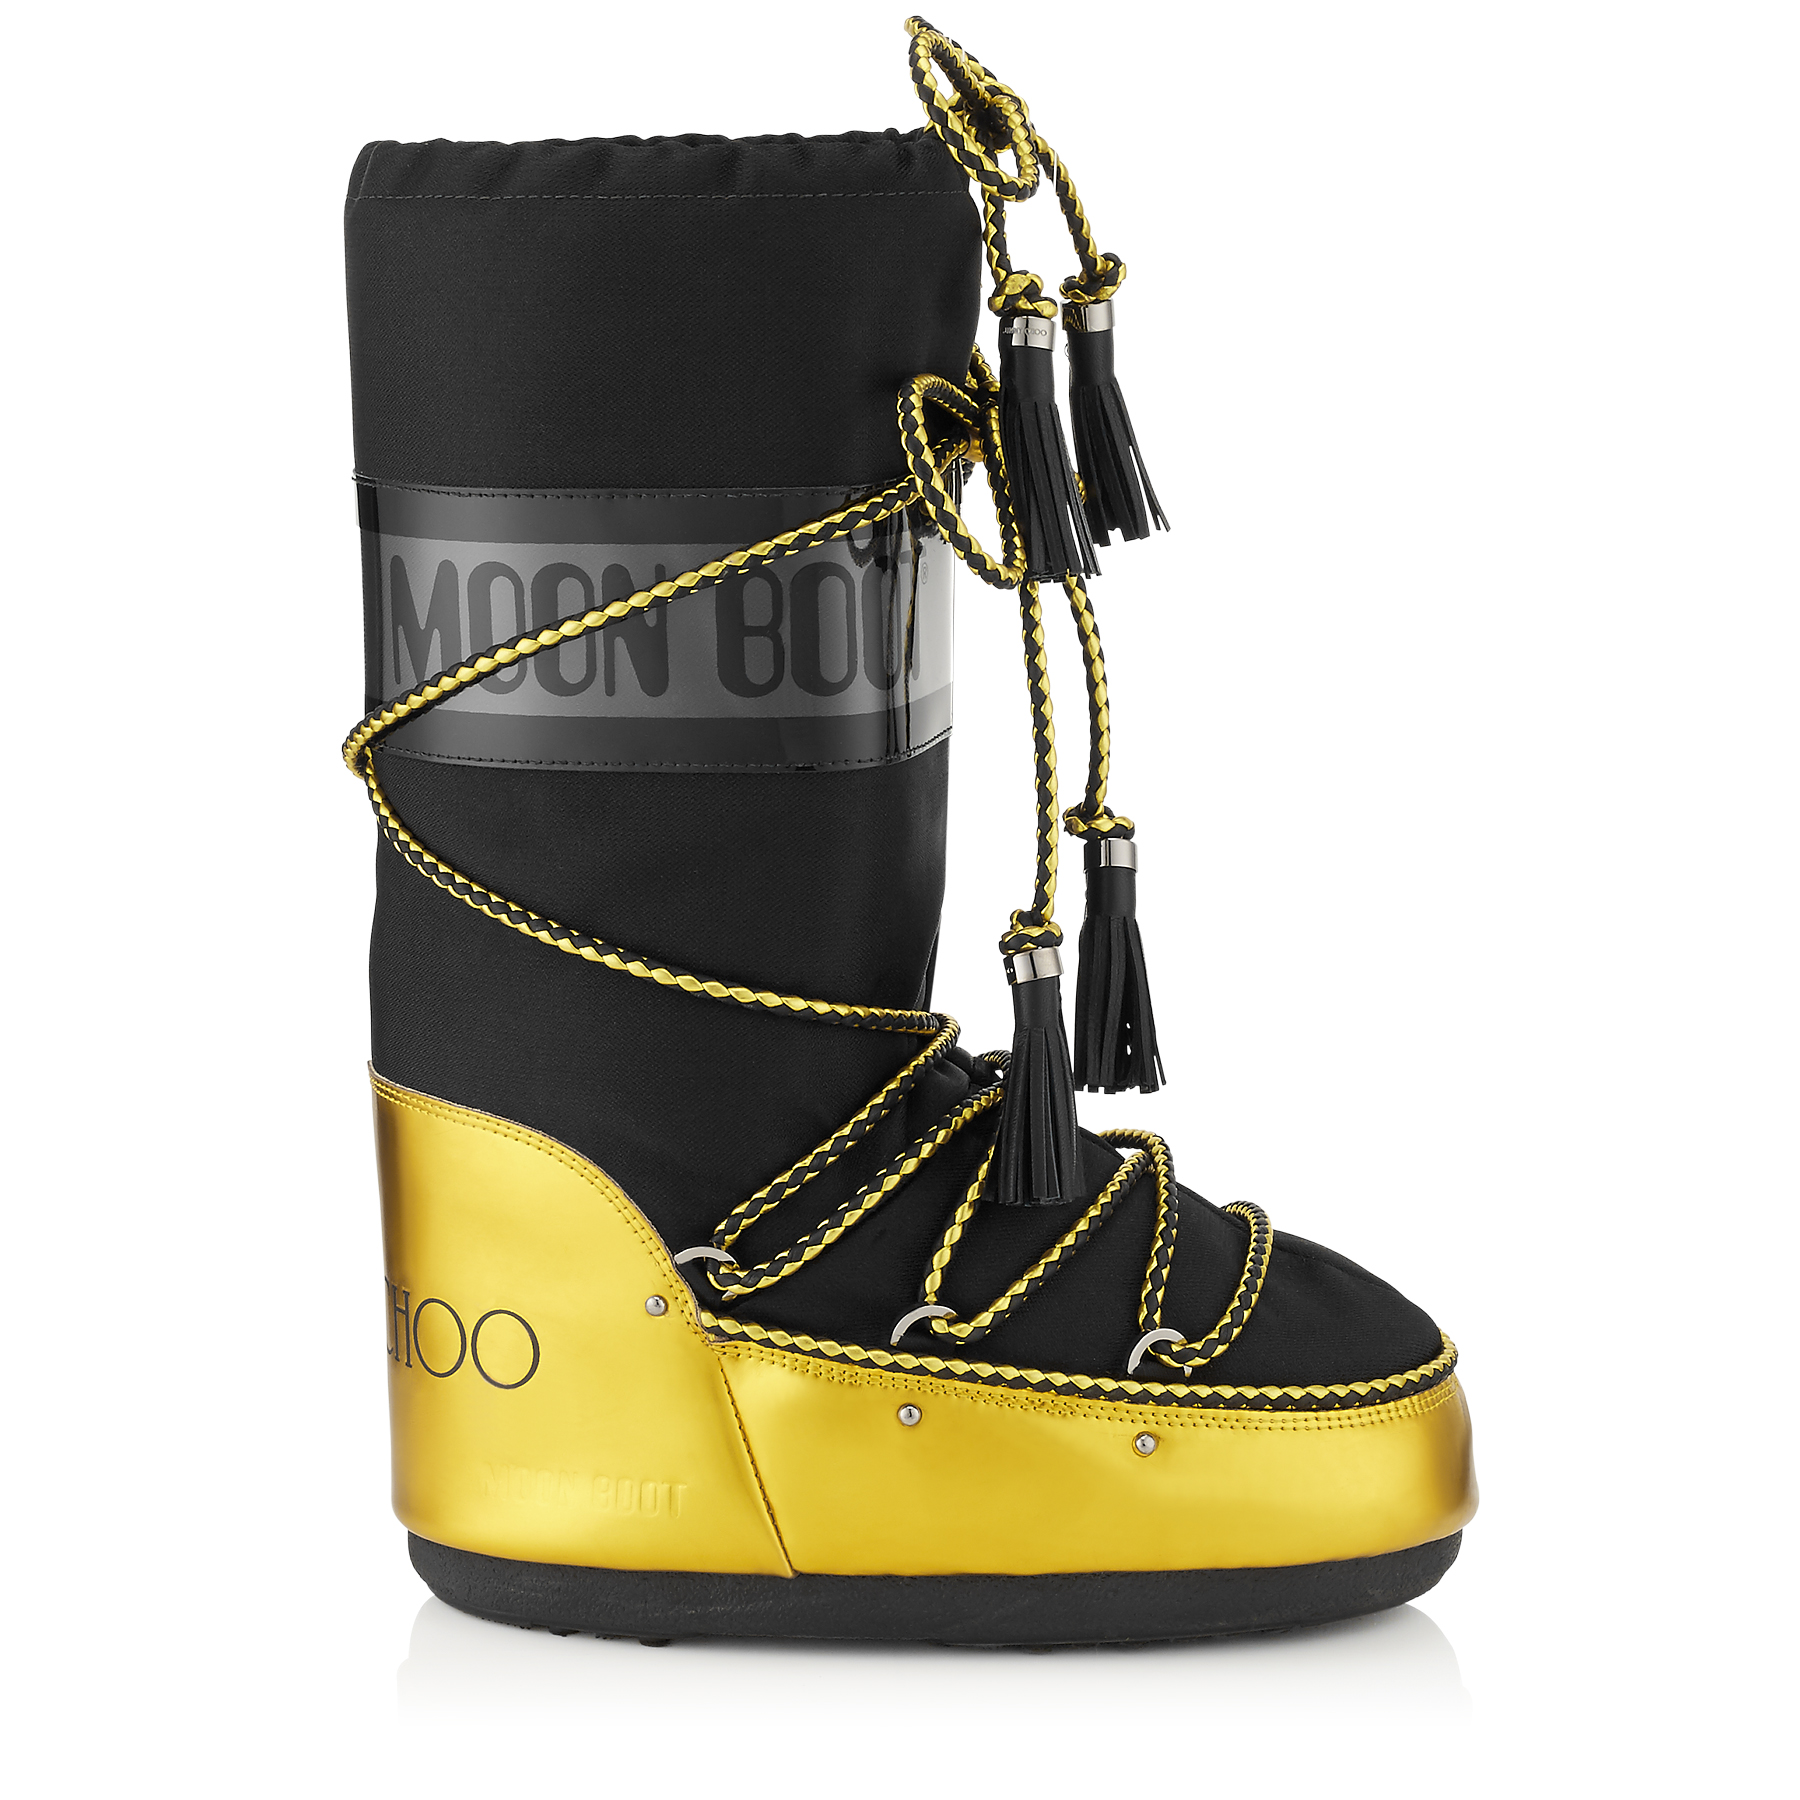 MB CLASSIC Acid Yellow Mirror Leather and Black Shiny Fabric Moon Boot®